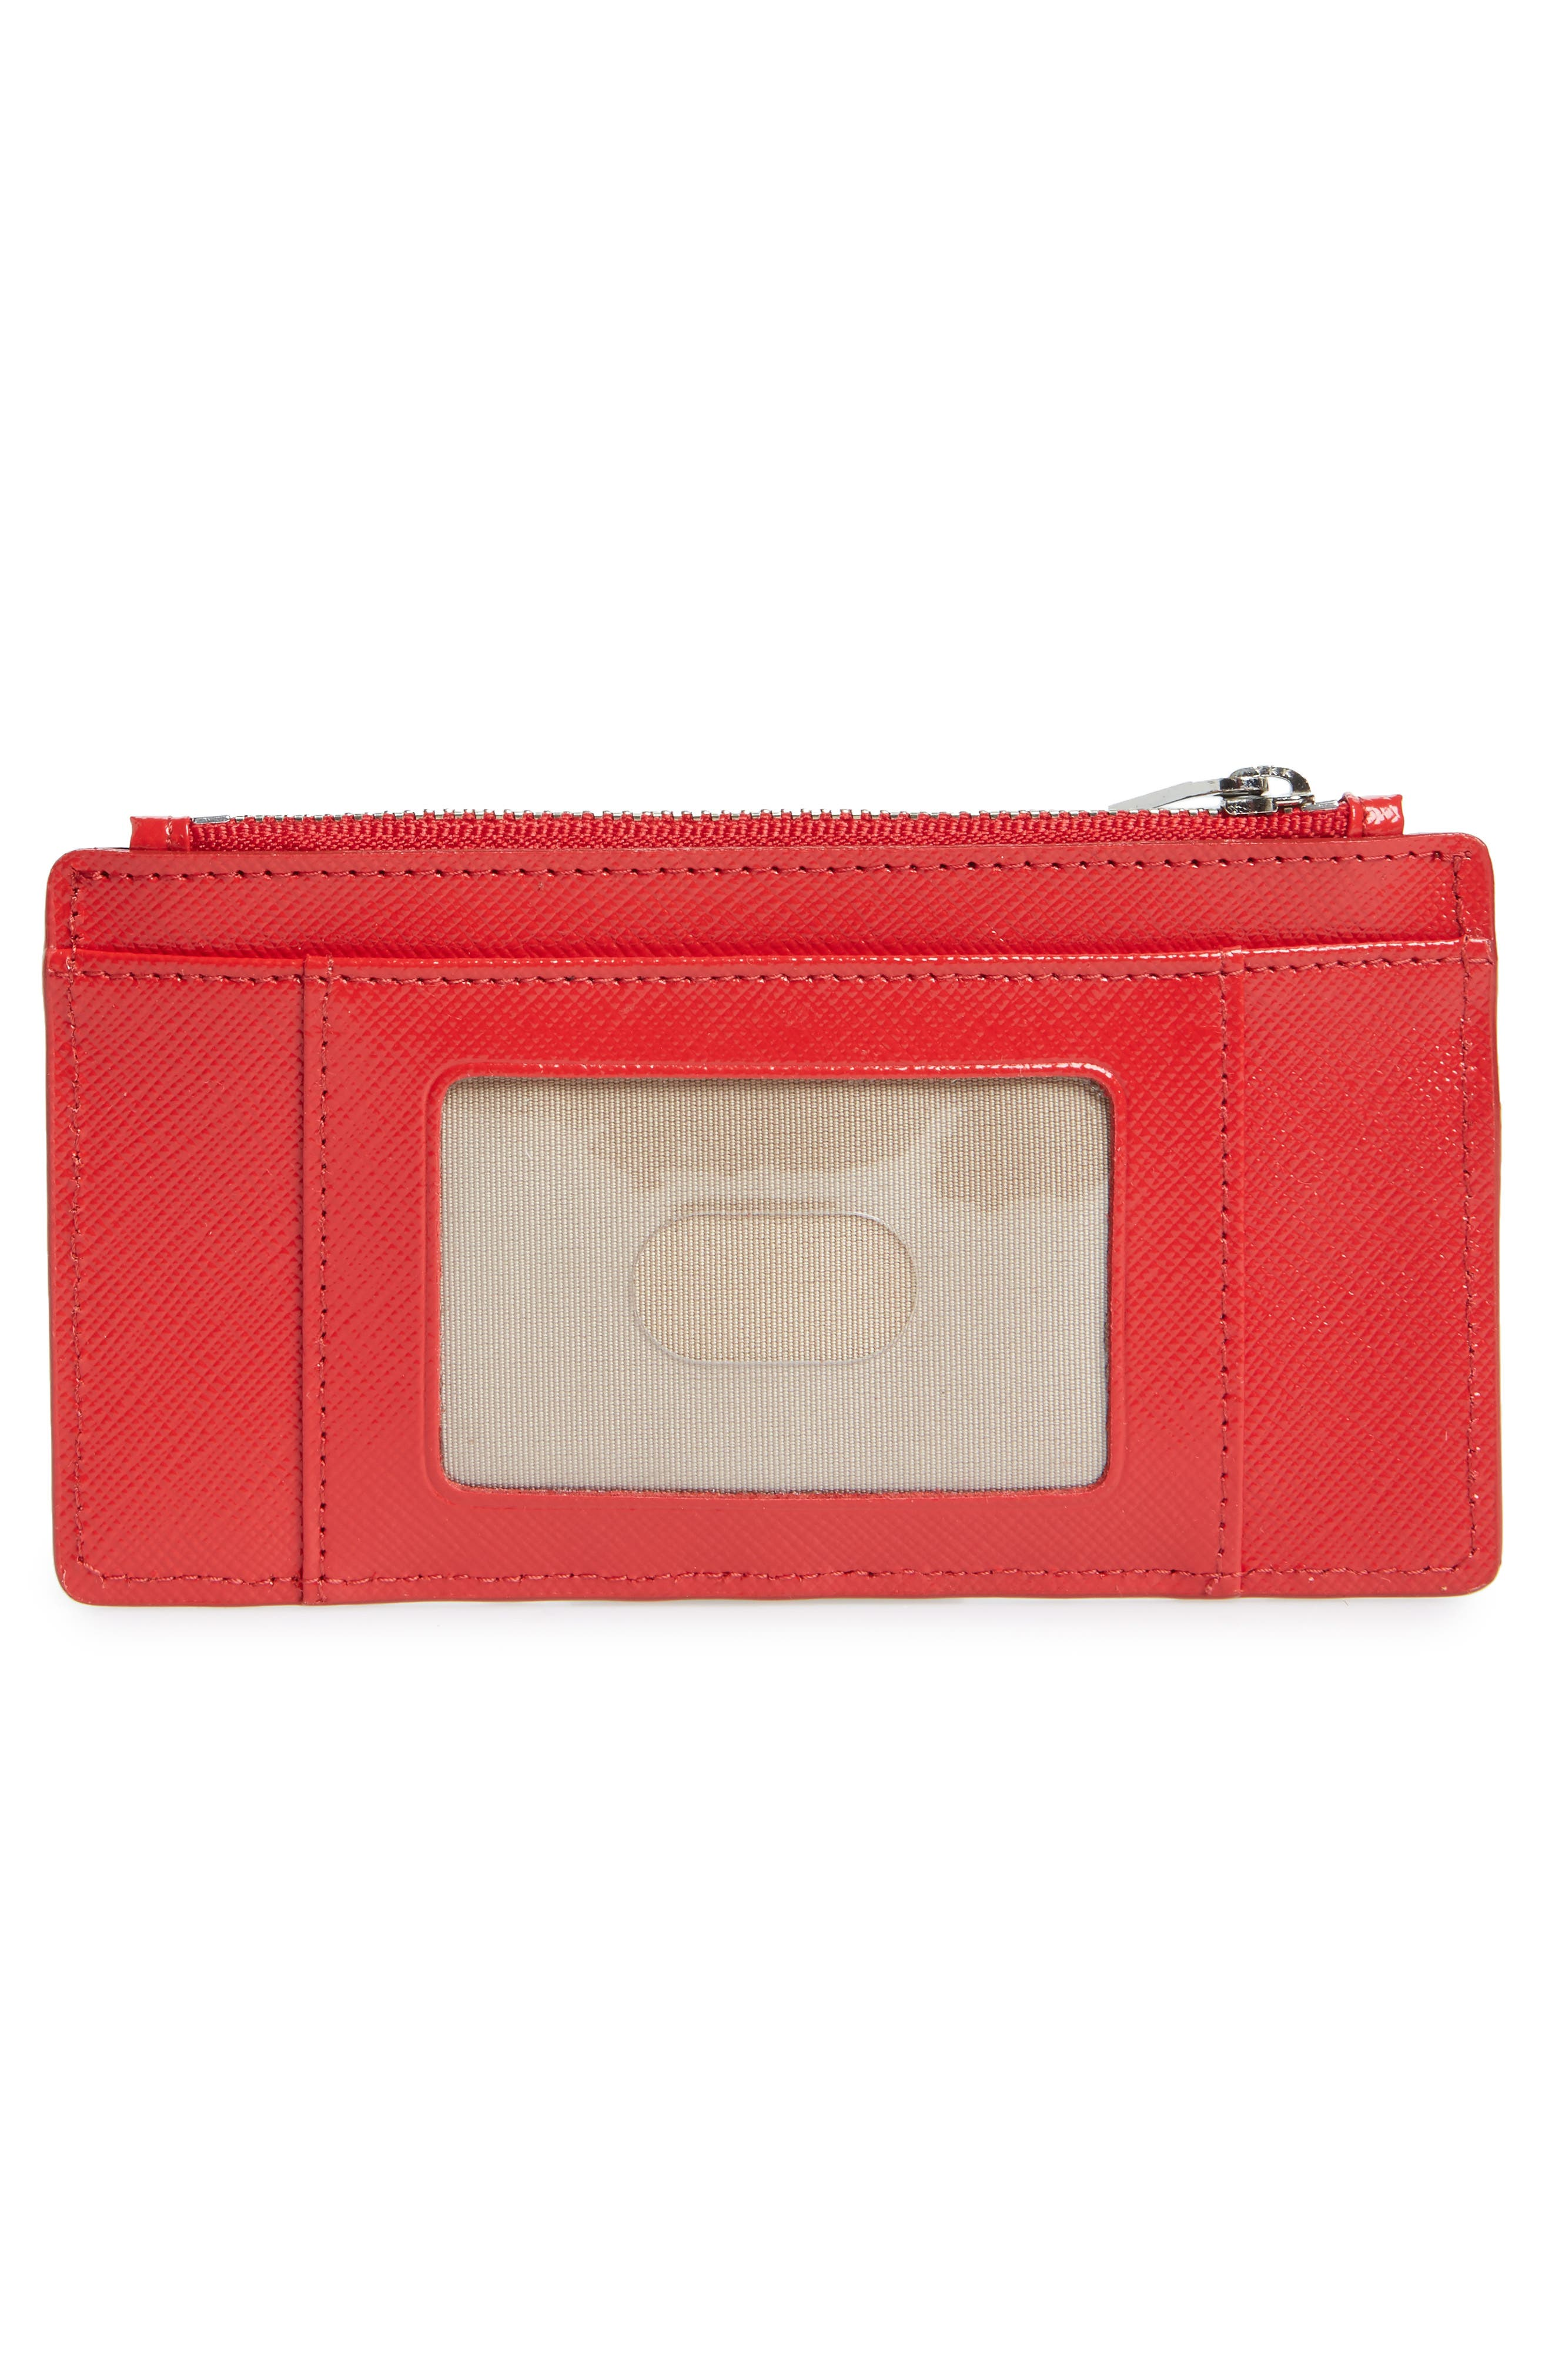 Leather Card Case,                             Alternate thumbnail 2, color,                             Red Ribbon